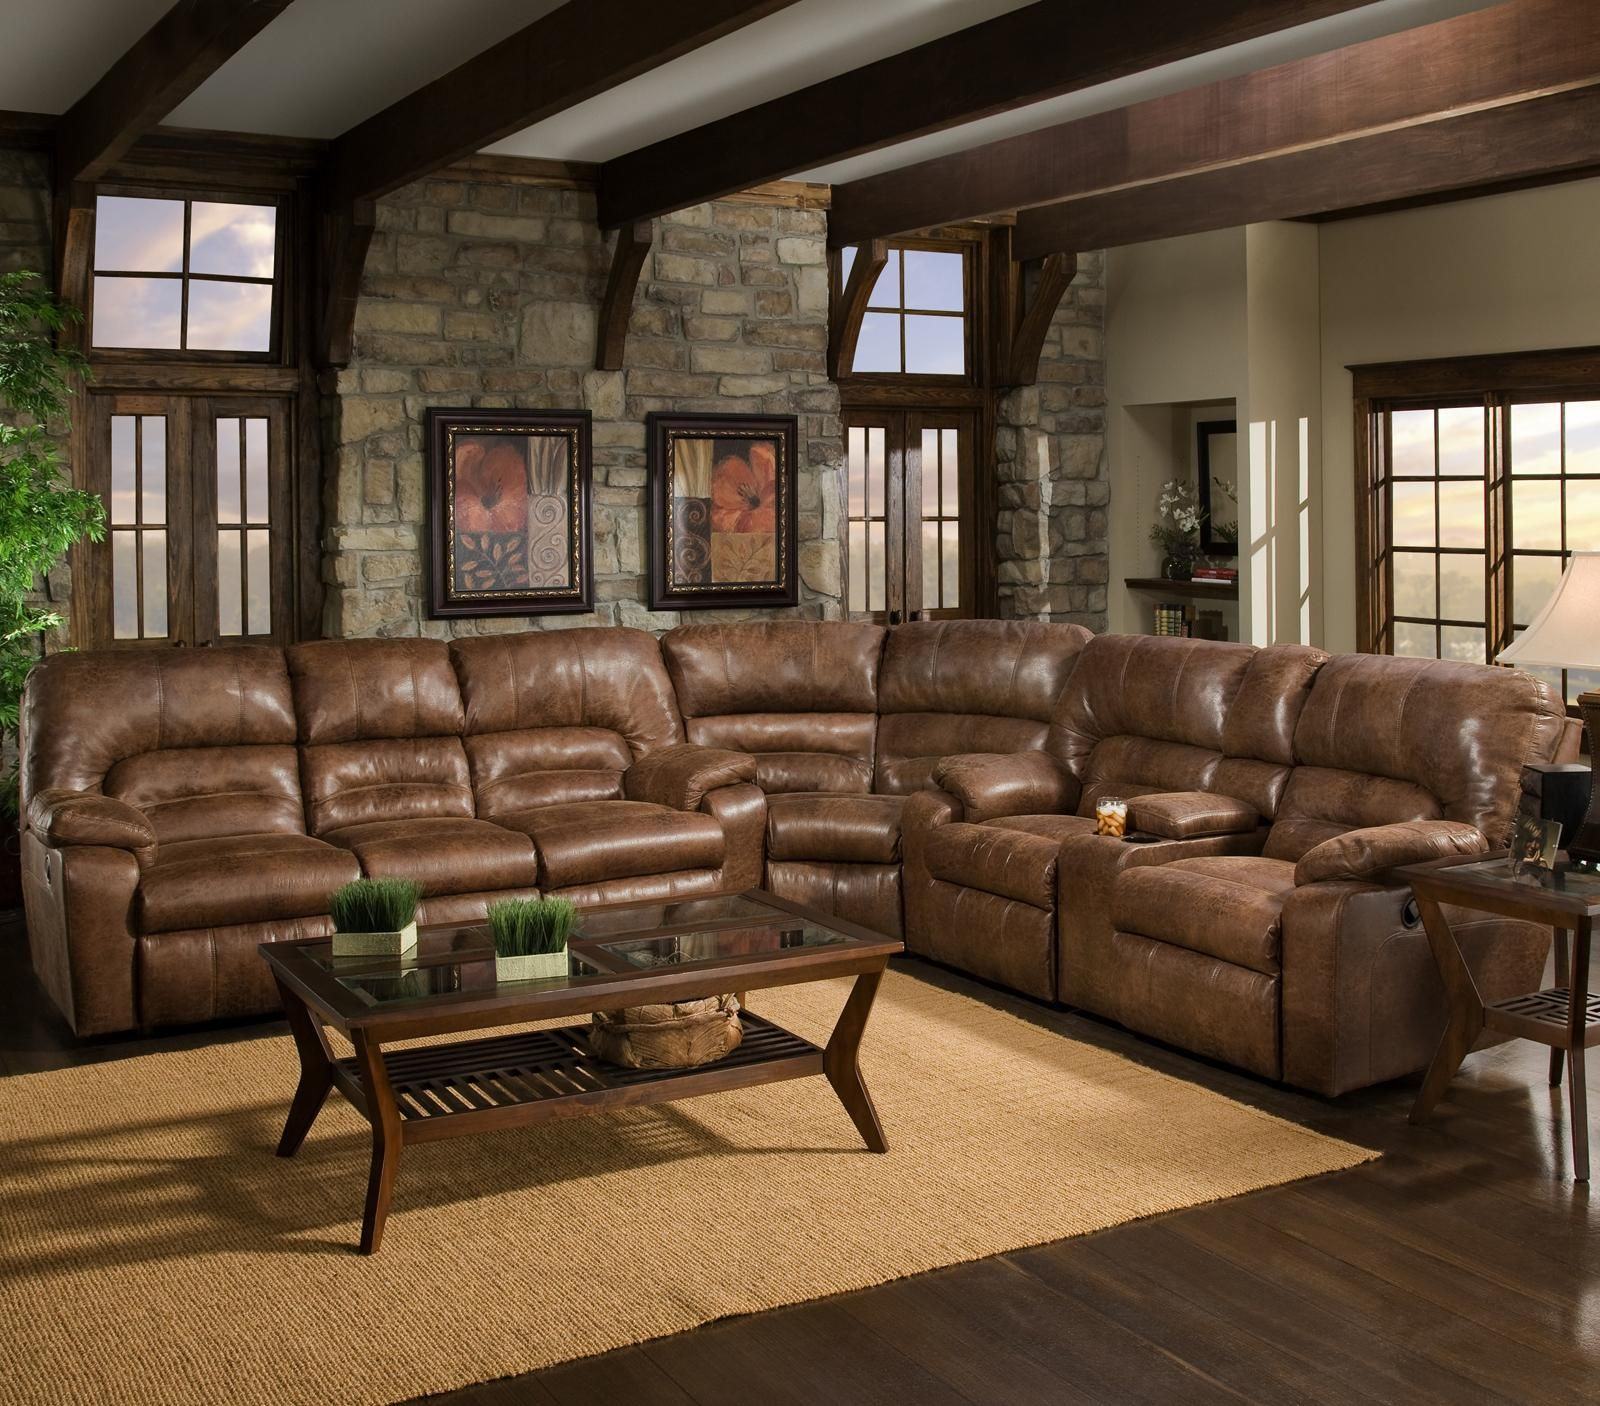 596 3 Piece Reclining Sectional By Franklin Basement